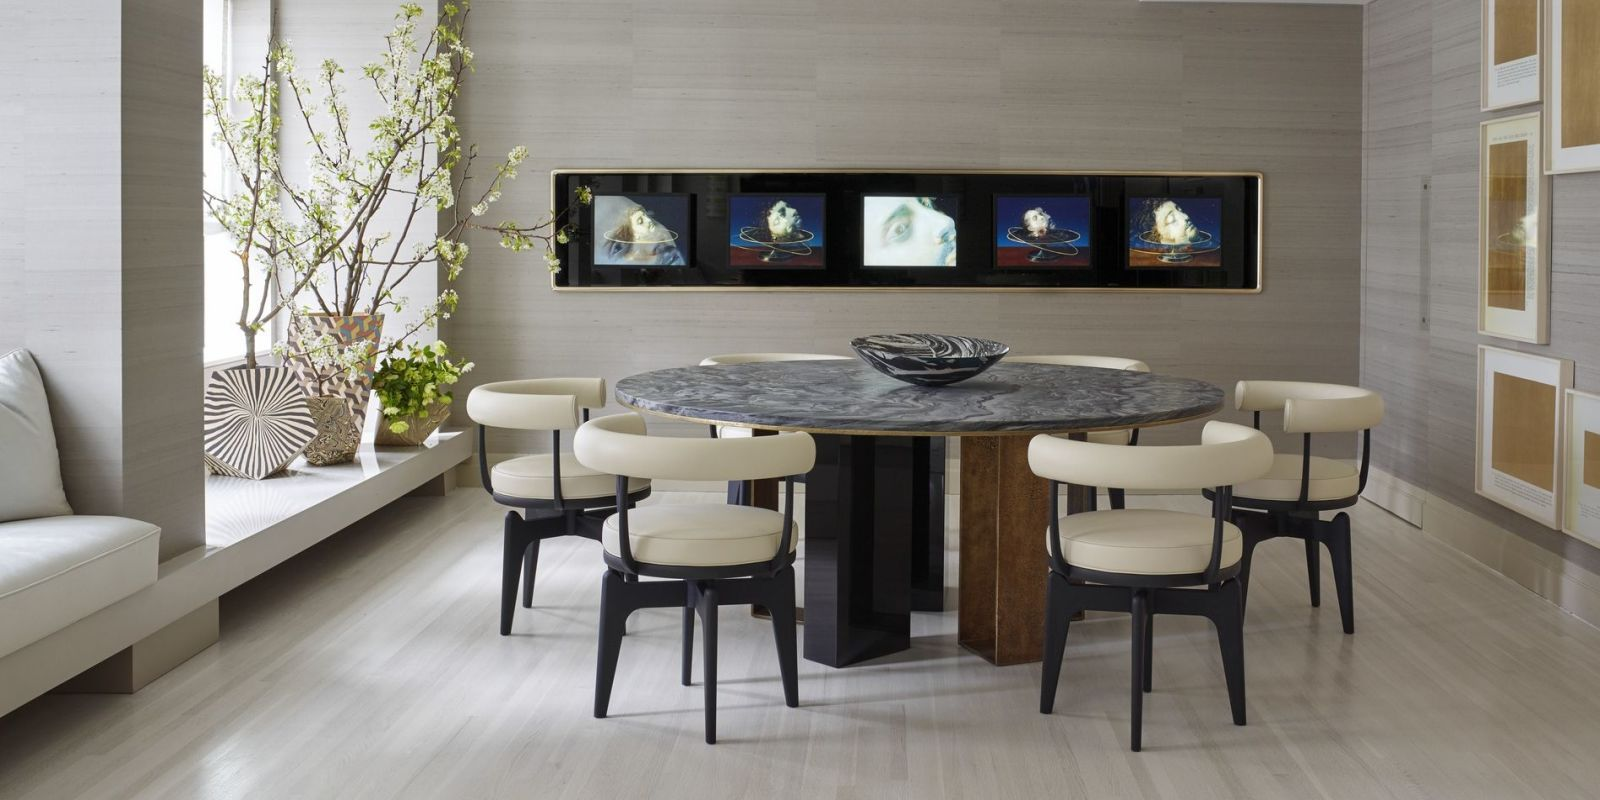 image & 25 Modern Dining Room Decorating Ideas - Contemporary Dining Room ...